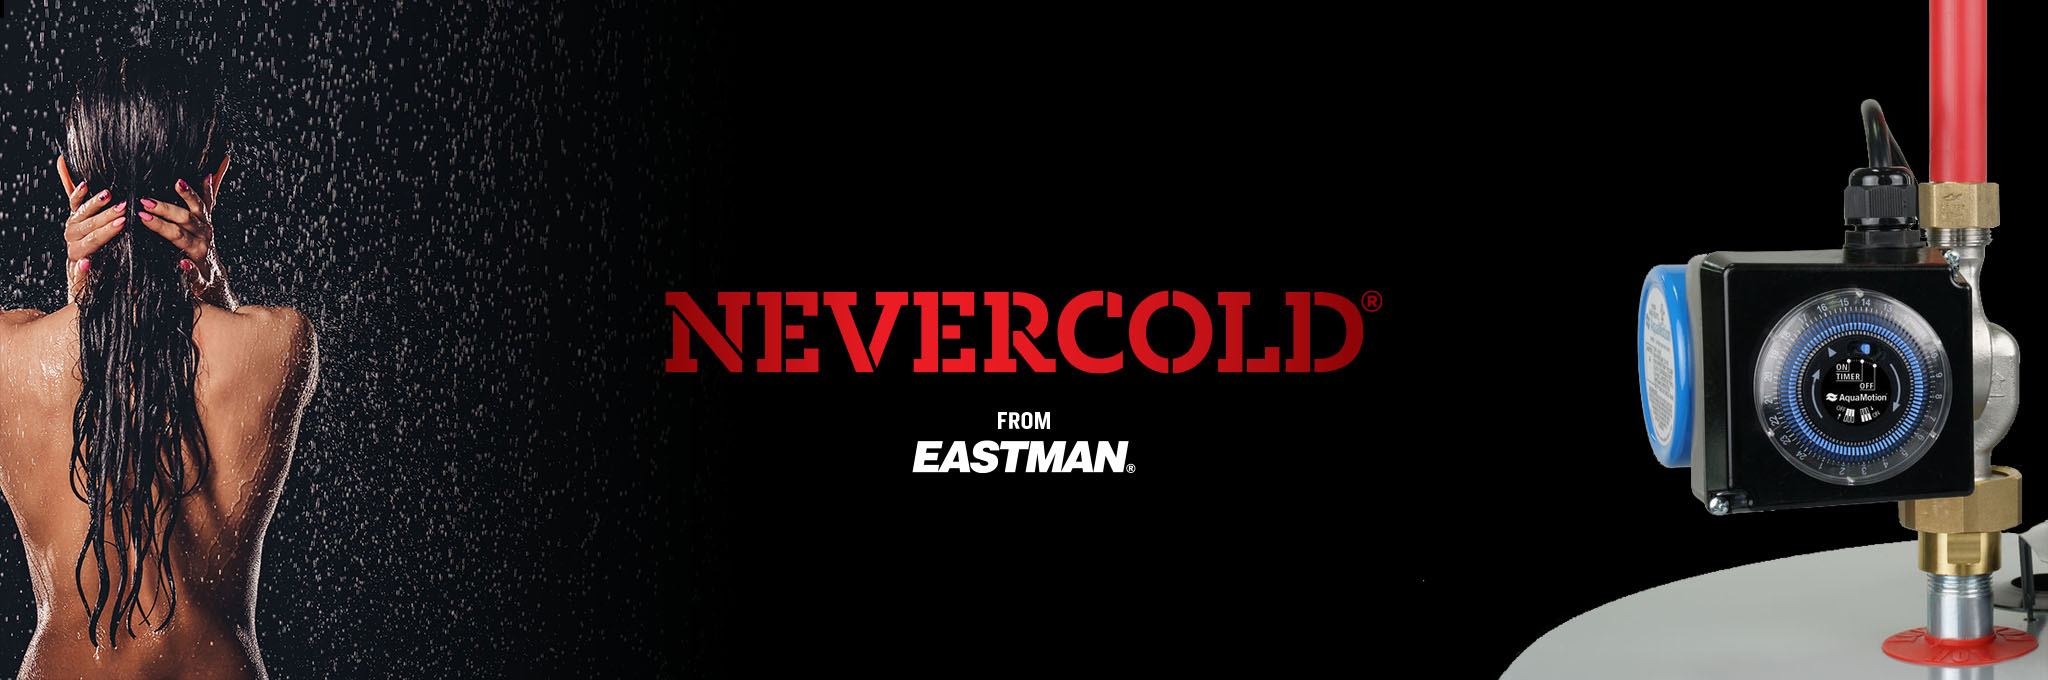 Nevercold Hot Water Recirculation System from Eastman